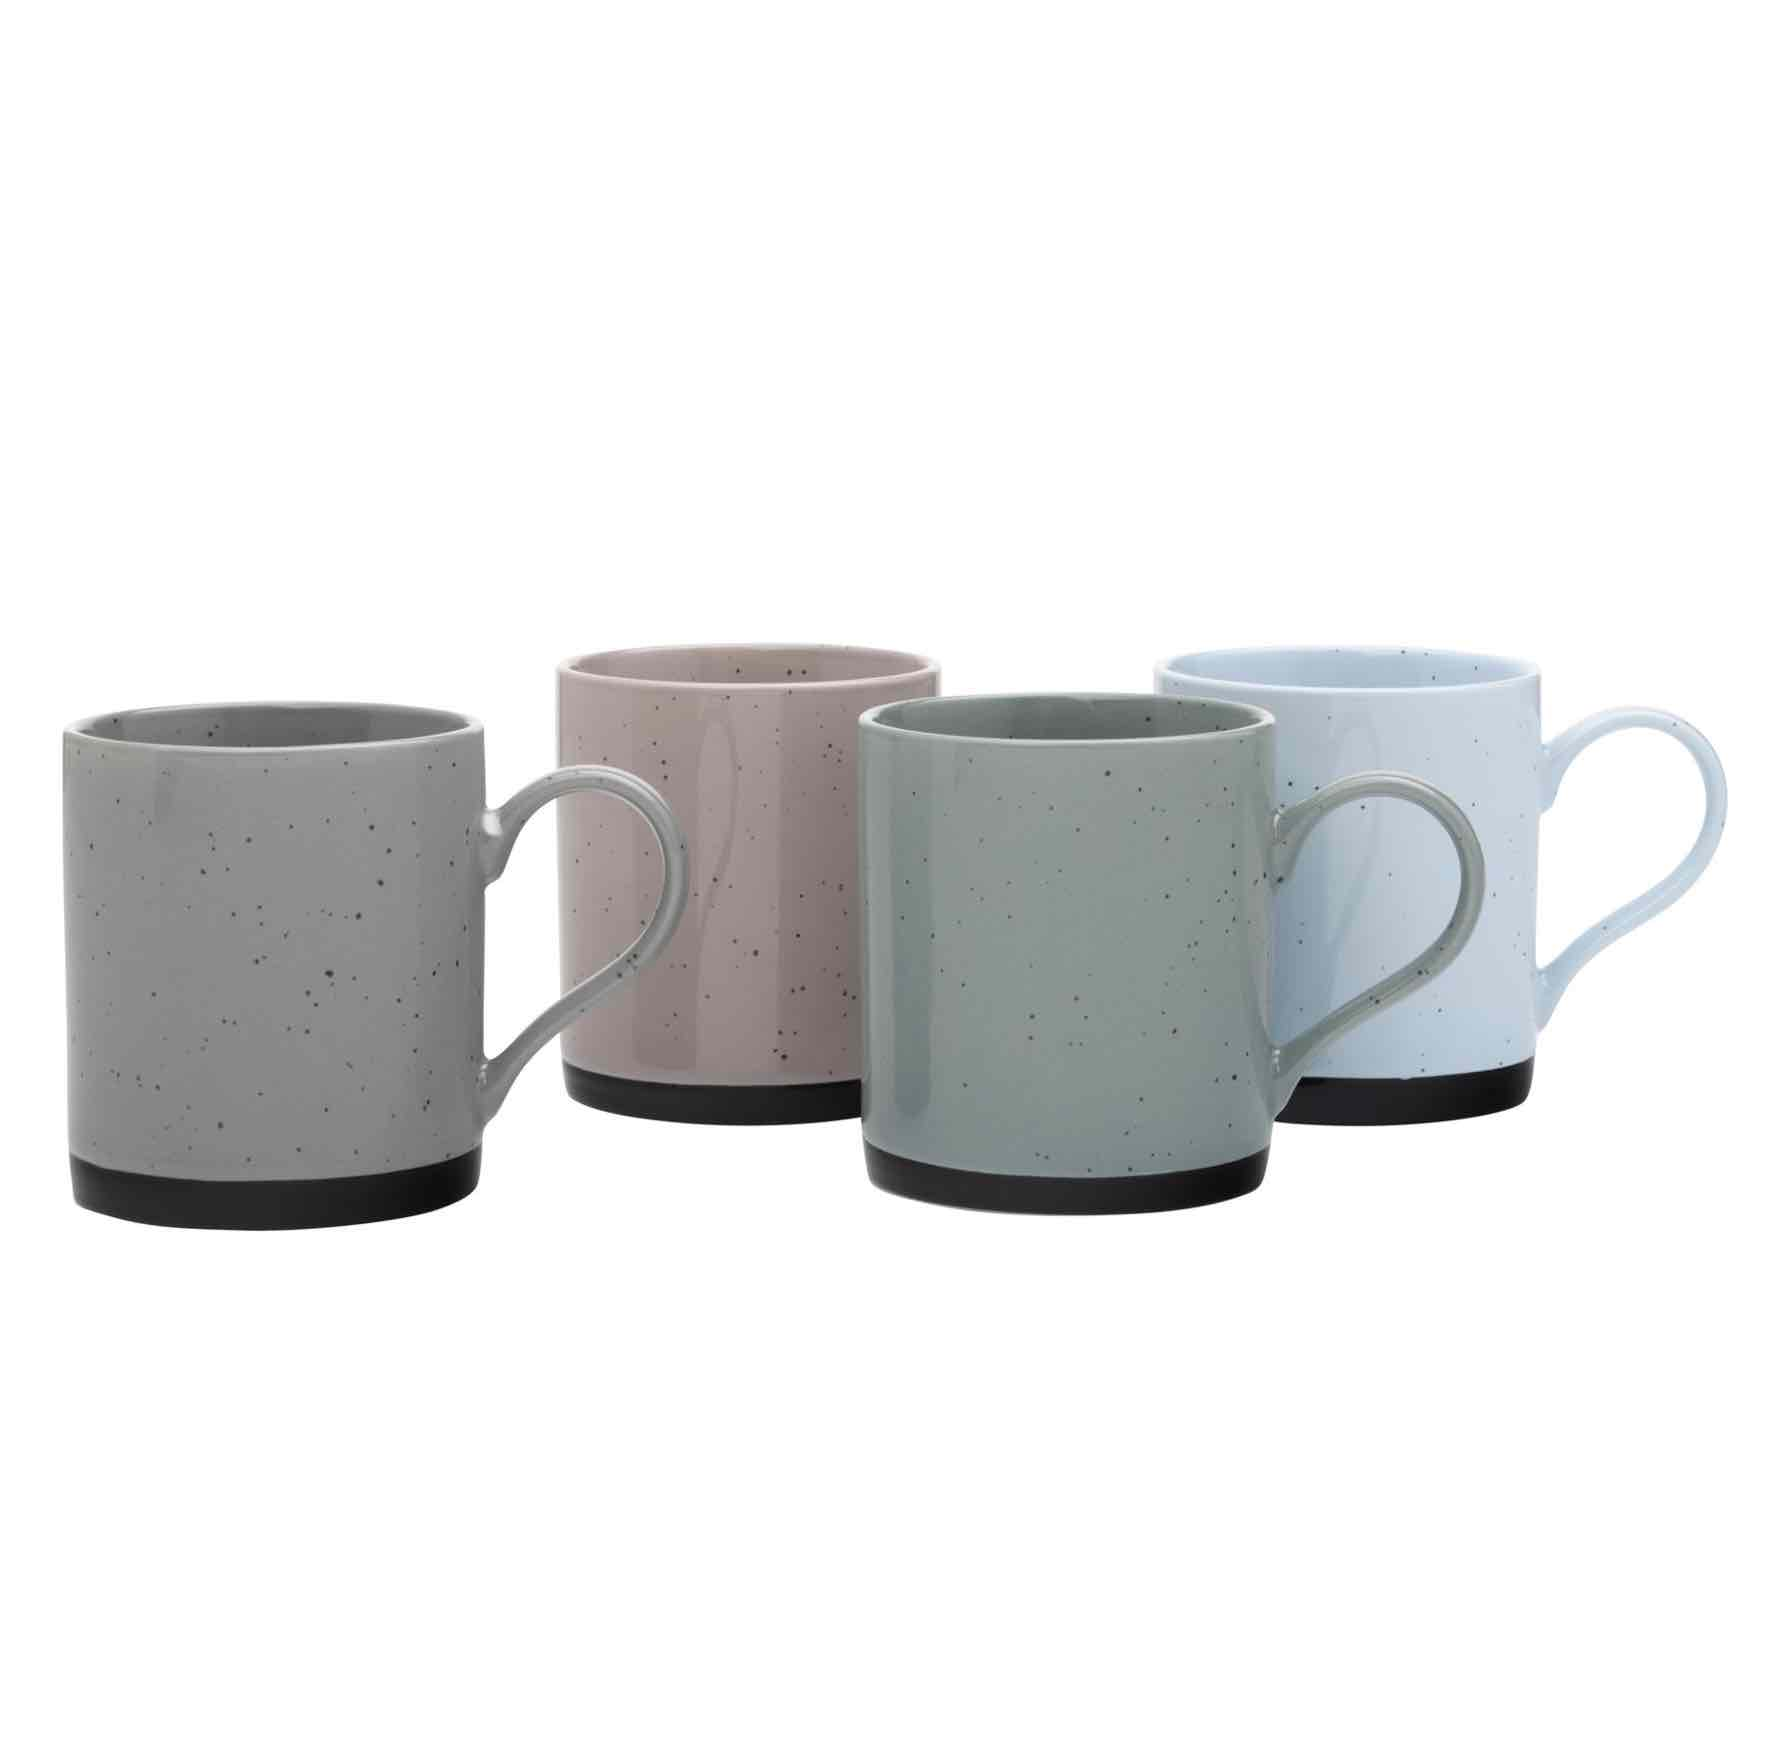 Maxwell & Williams Speckle Mug Set | Set of 4 Mugs